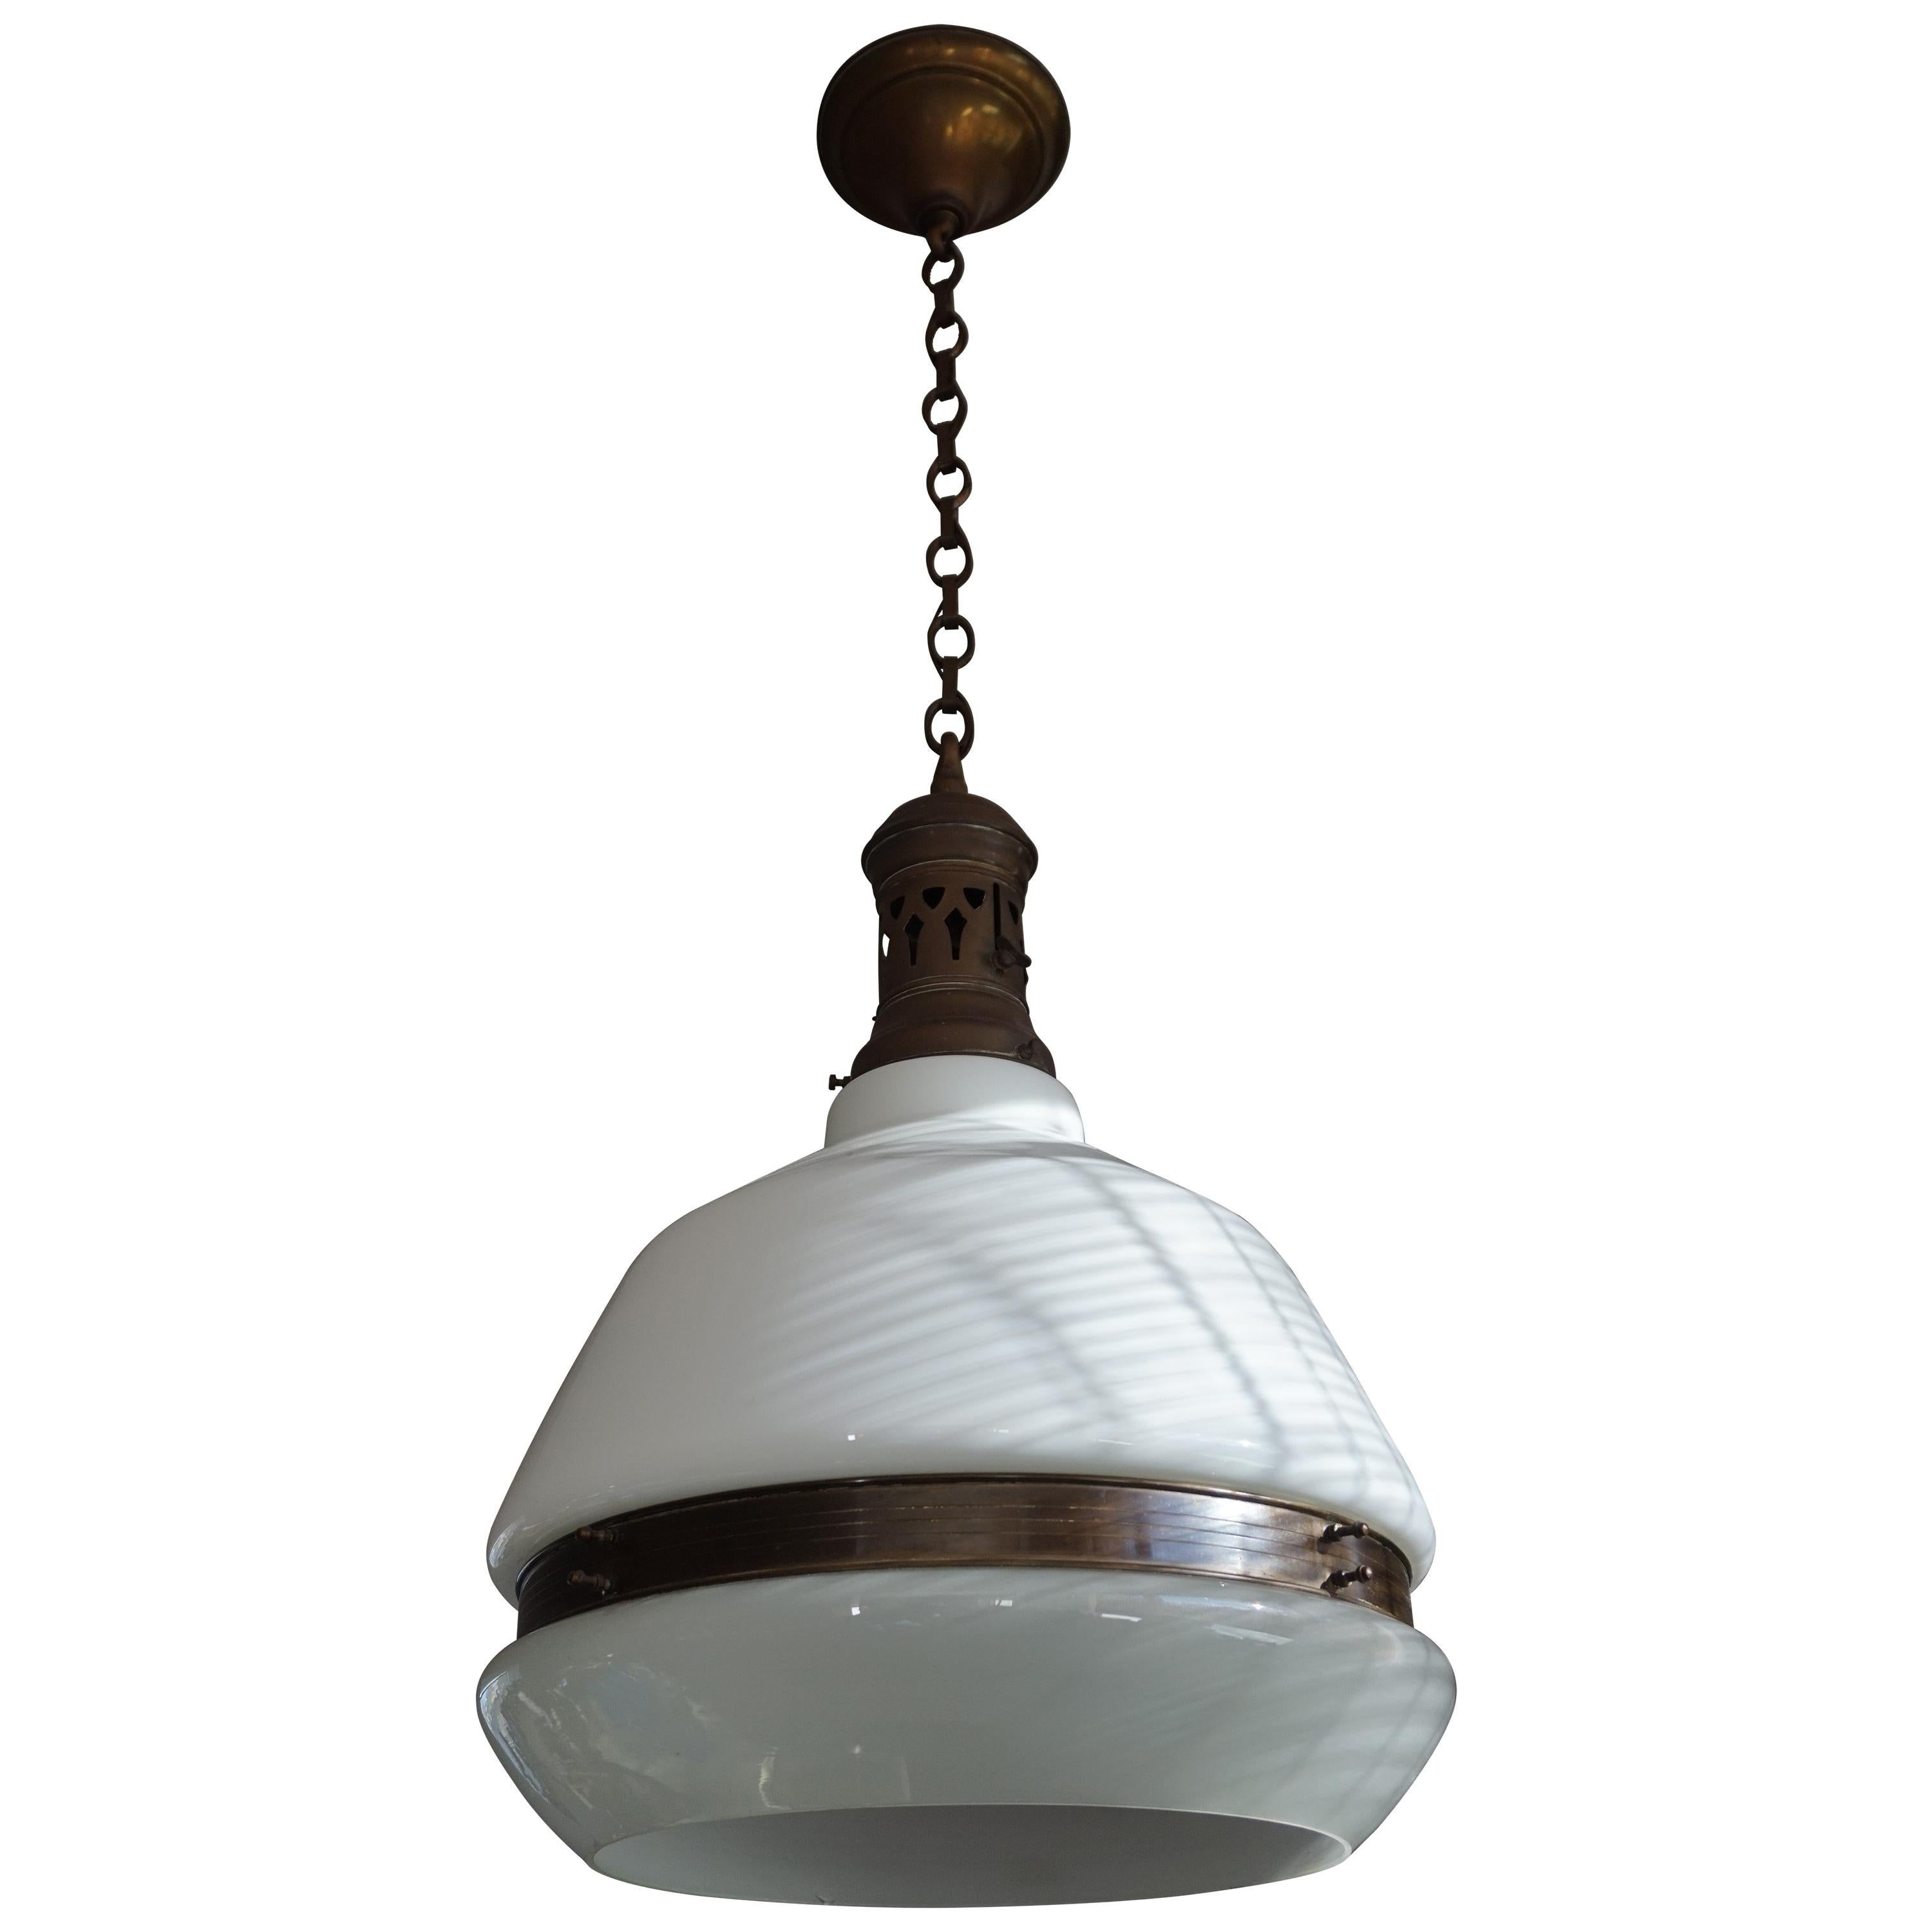 Arts and crafts lighting light fixtures 466 for sale at 1stdibs